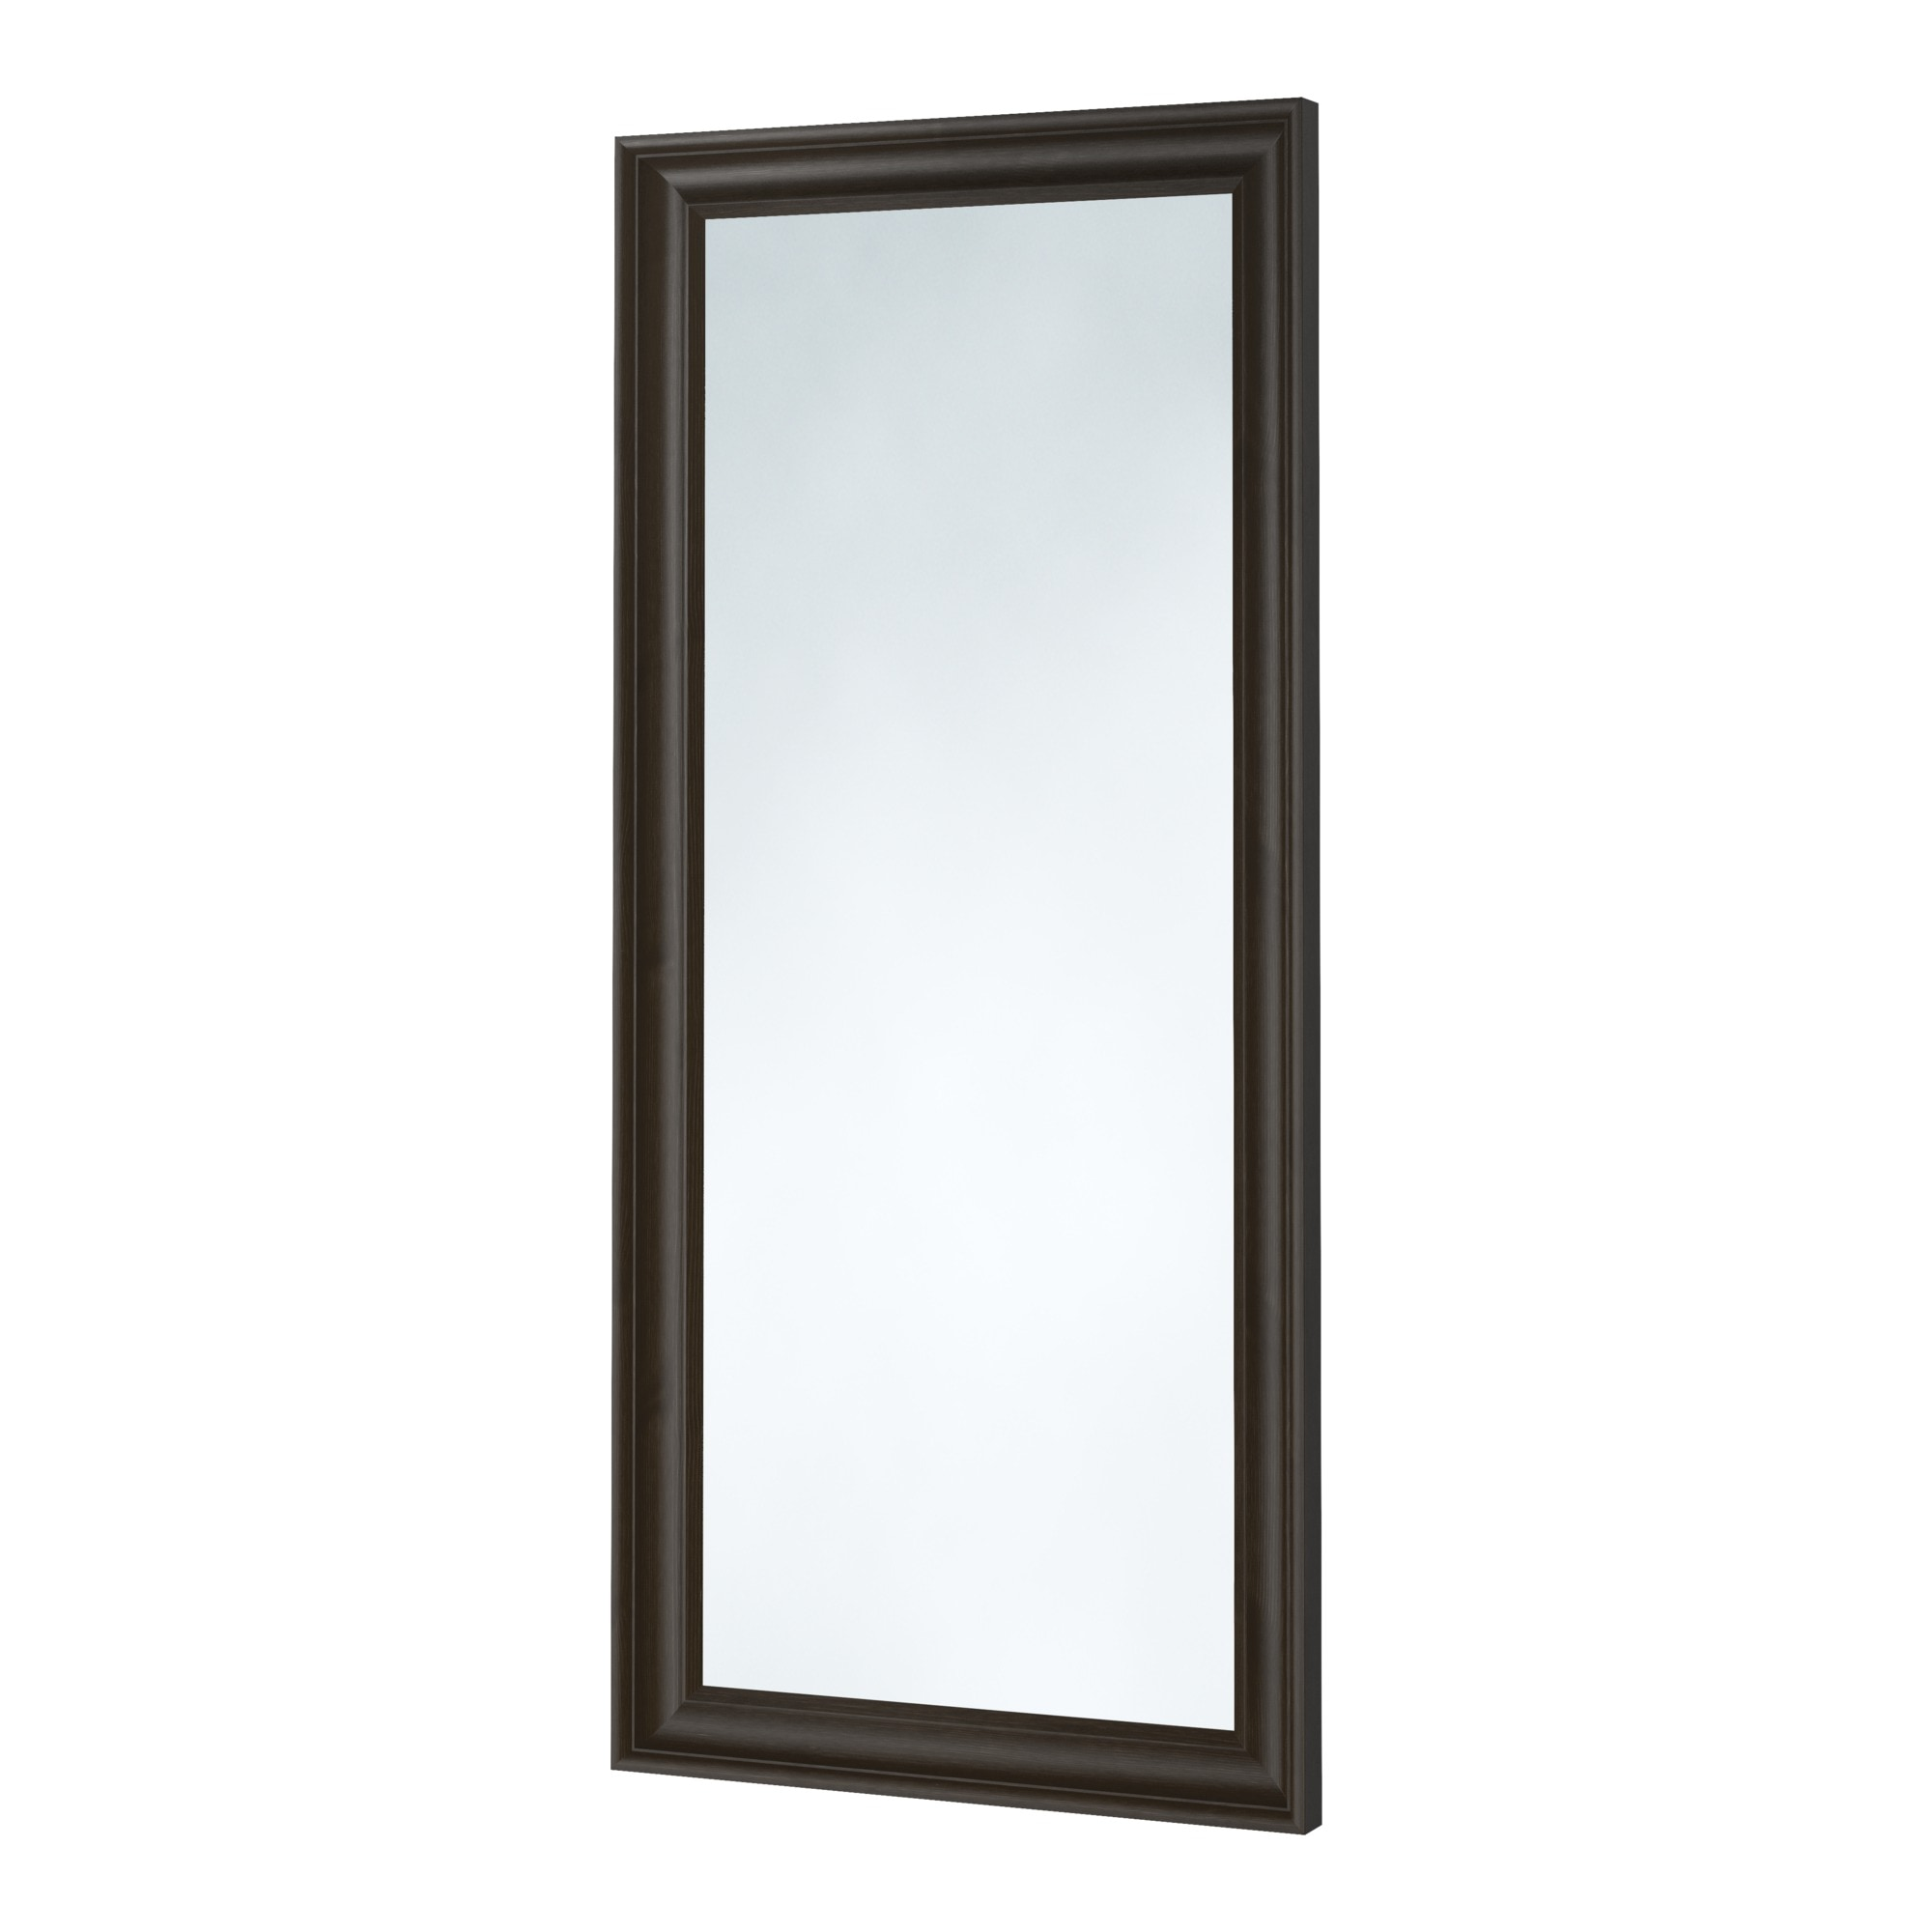 mirror. Beautiful Mirror Inter IKEA Systems BV 1999  2018  Privacy Policy Cookie Policy  Accessibility In Mirror